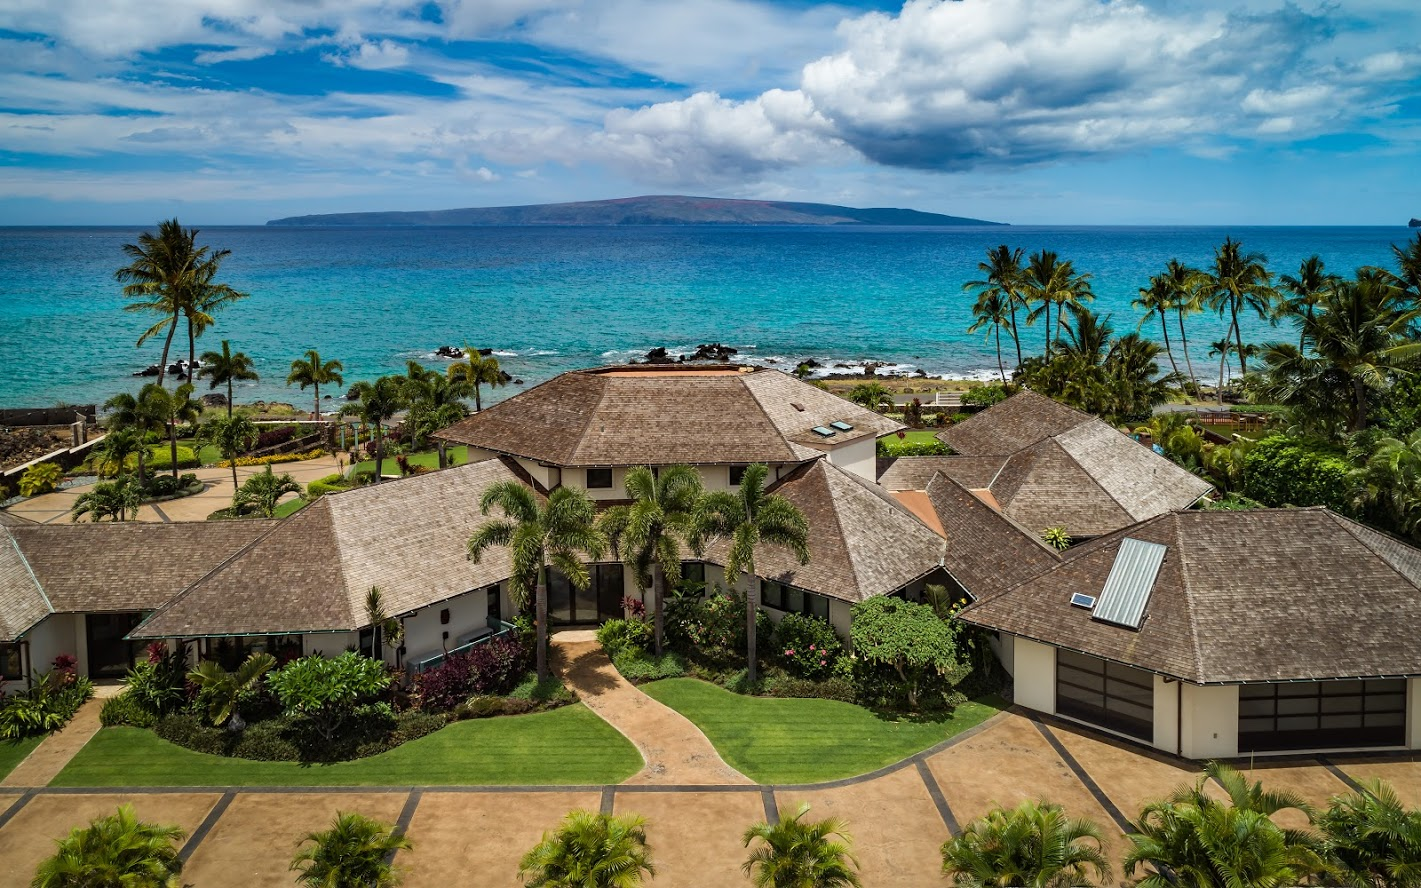 $14 Million Sale Marks Maui's Highest Closing So Far This Year